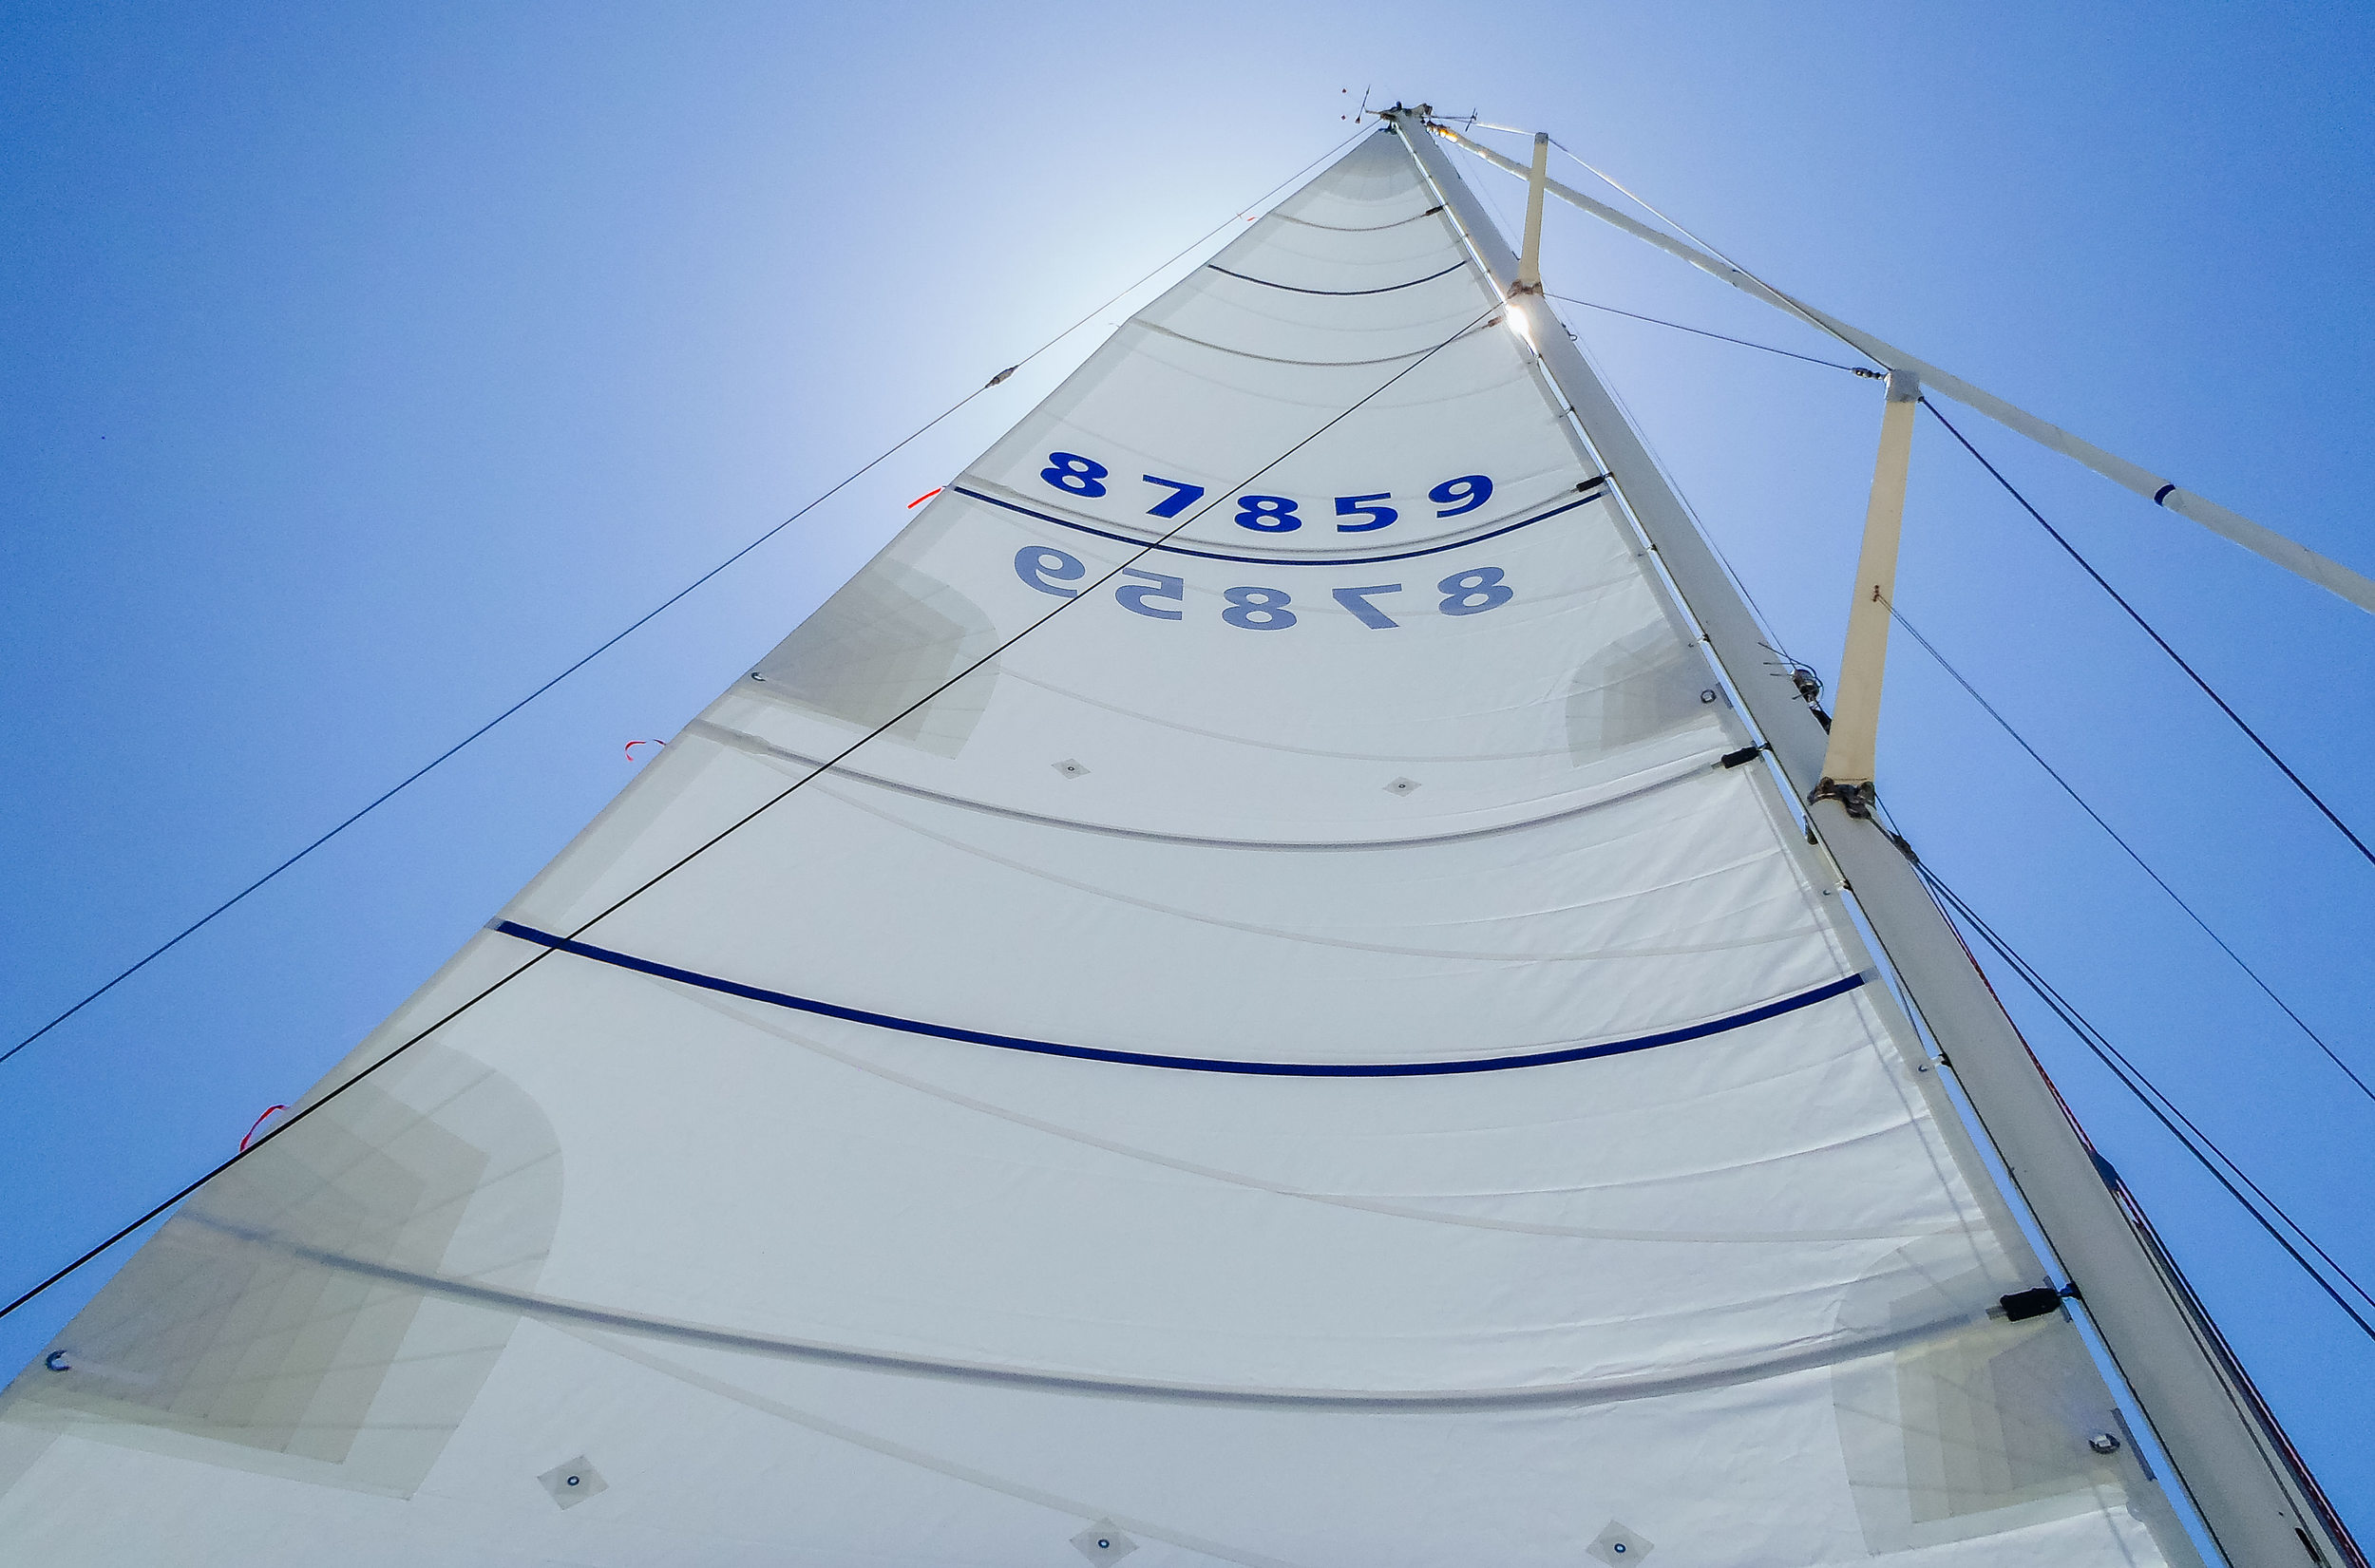 A new Dacron full-battenedmain with three reefs on a Swan 46.